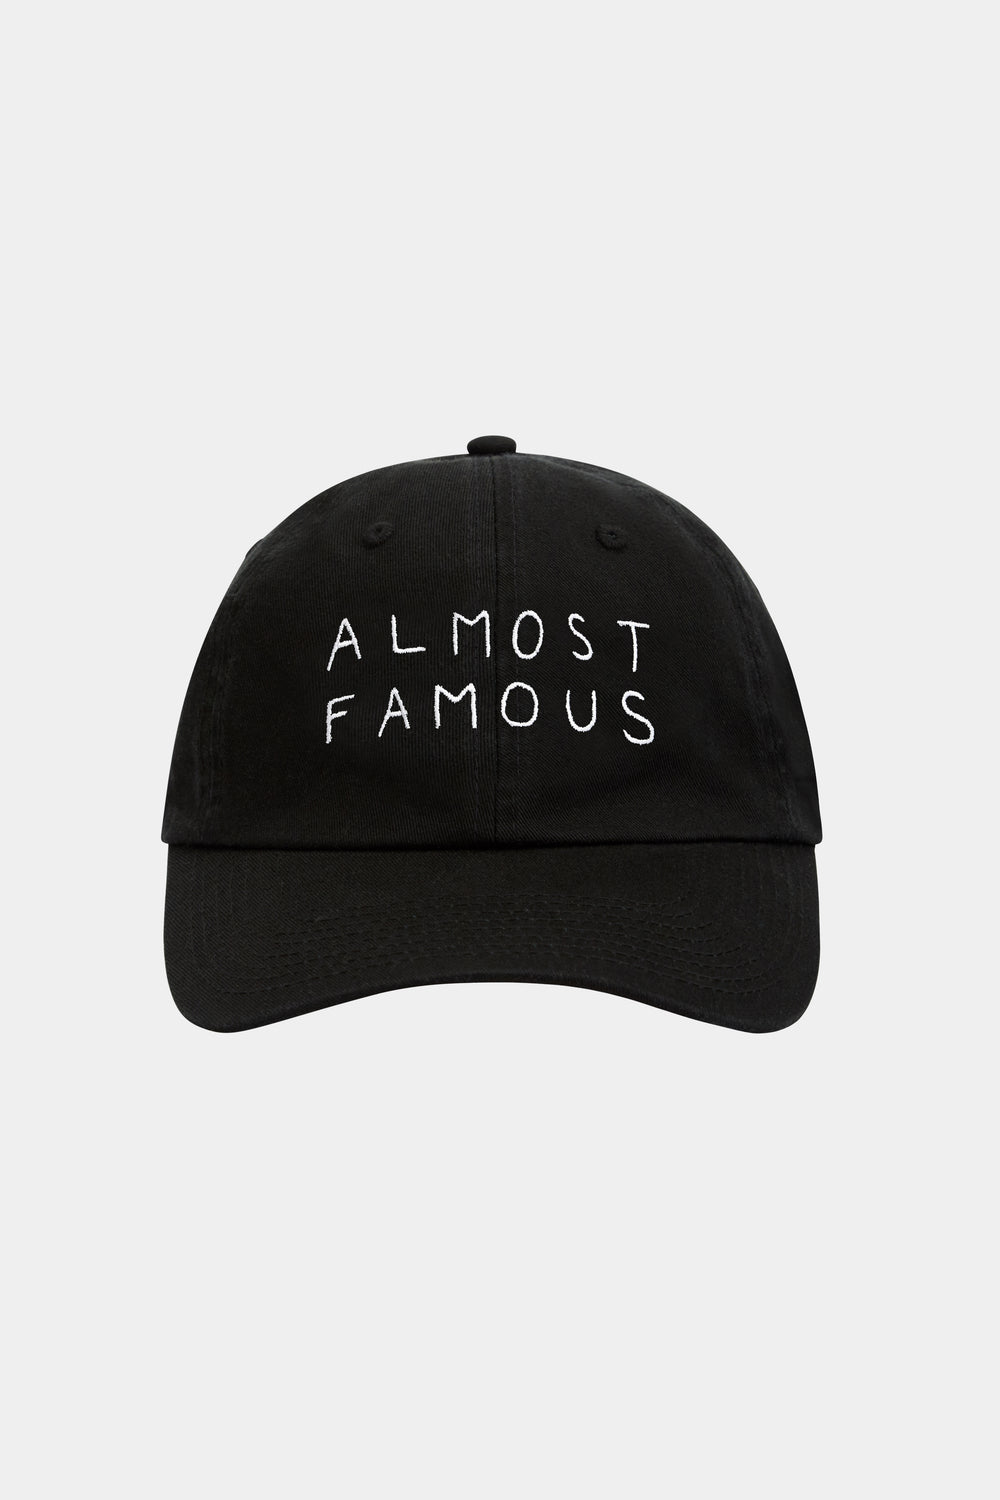 ALMOST FAMOUS CAP (BLACK)